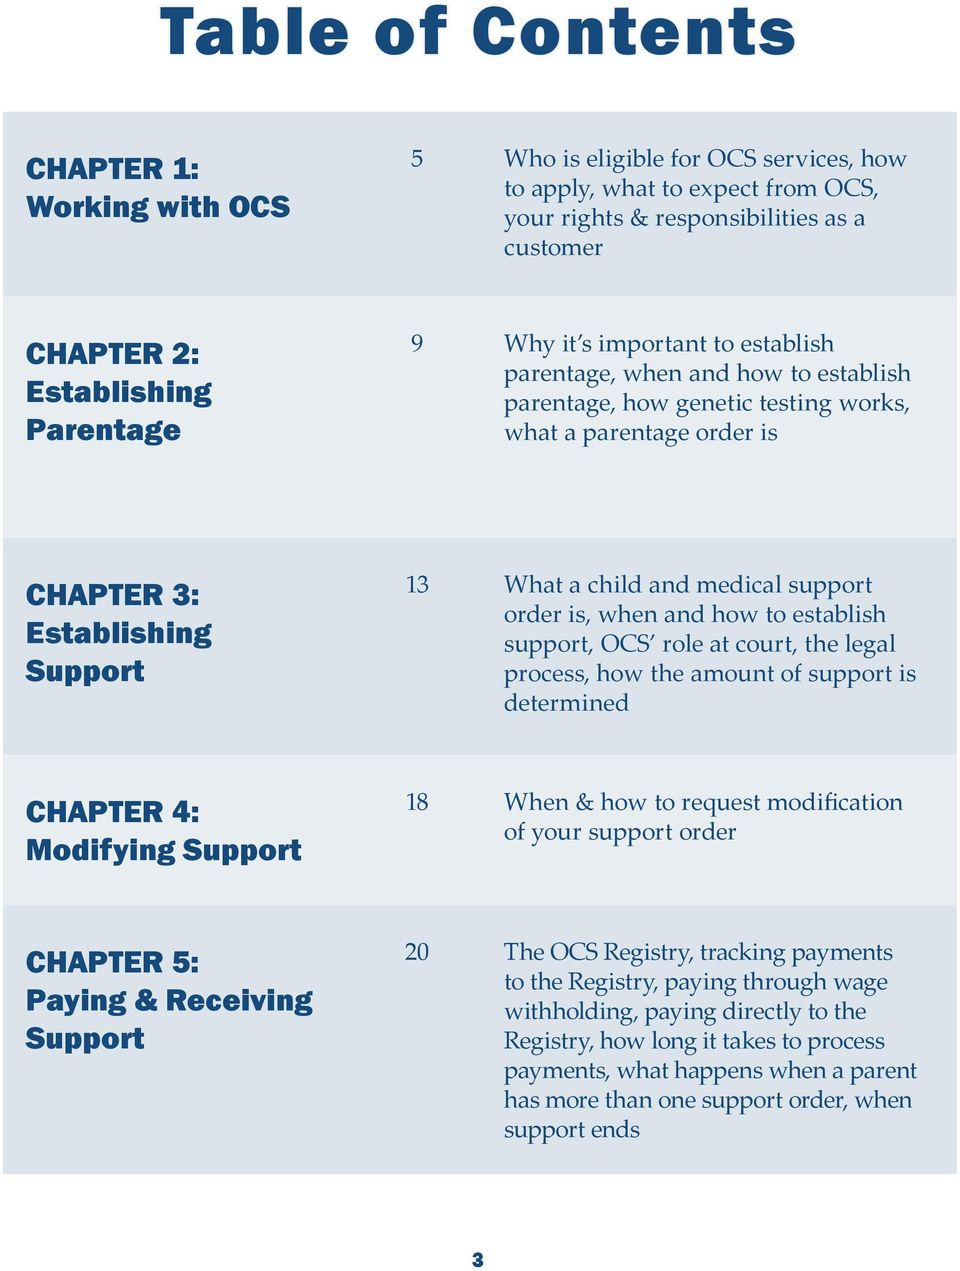 support order is, when and how to establish support, OCS role at court, the legal process, how the amount of support is determined CHAPTER 4: Modifying Support 18 When & how to request modification